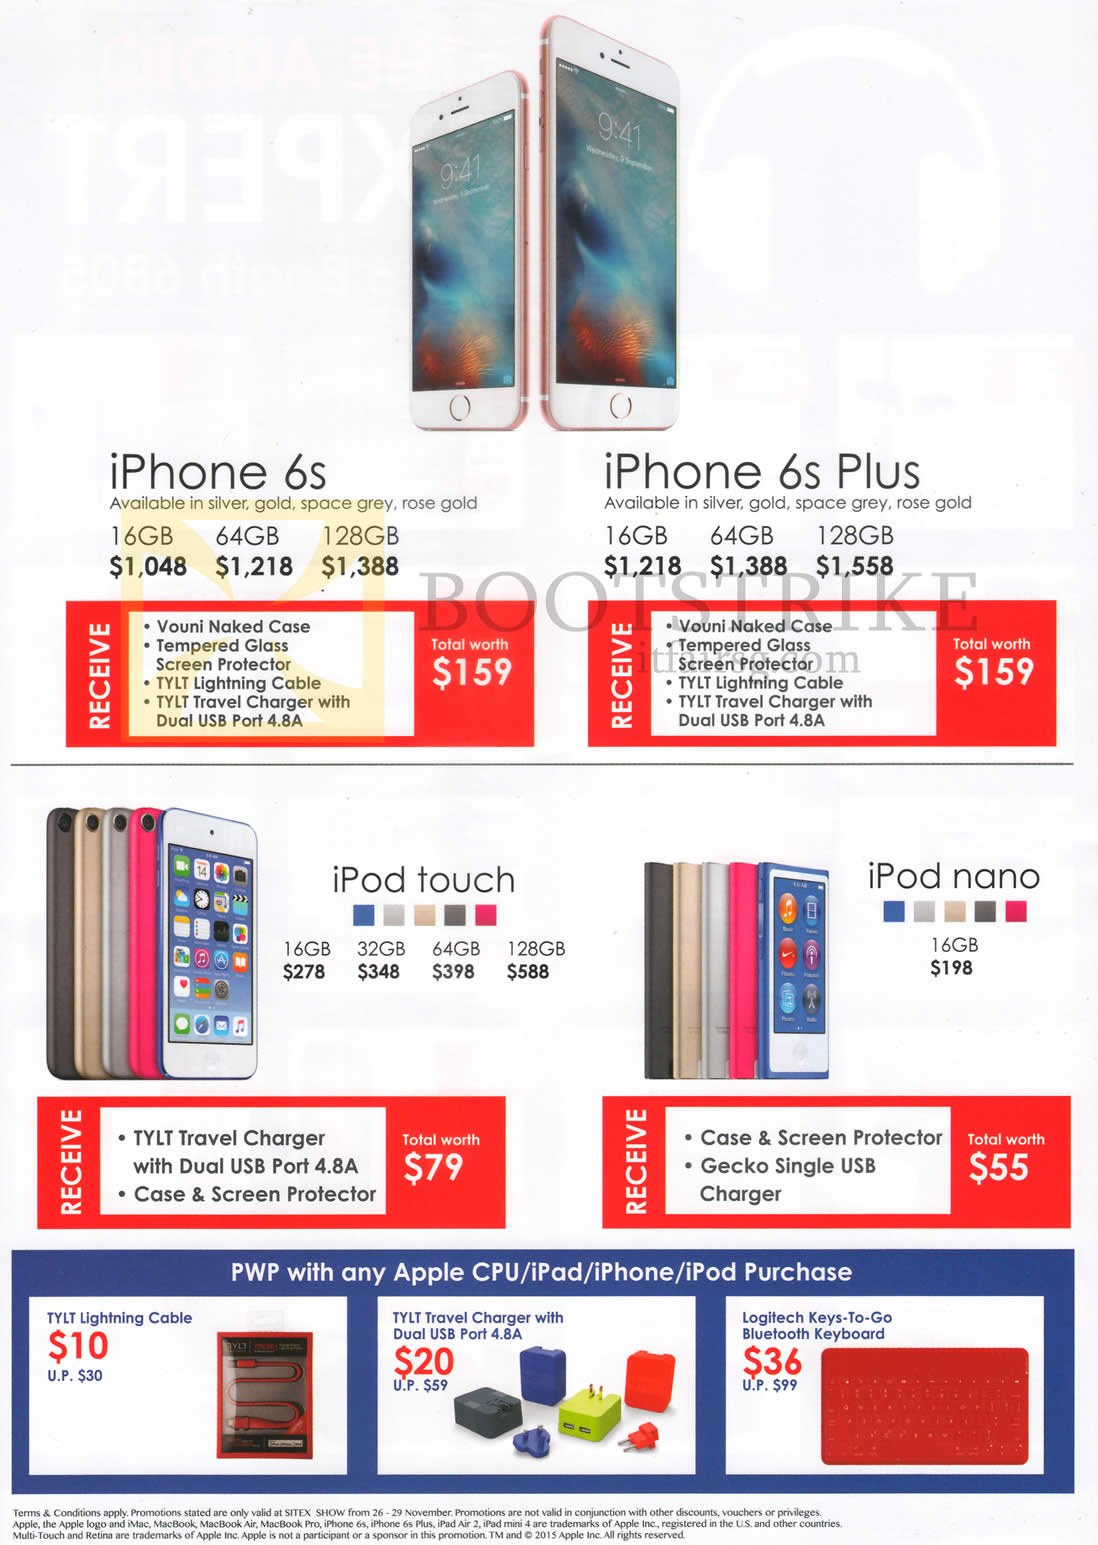 SITEX 2015 price list image brochure of Best Denki Apple IPhone 6s, 6s Plus, IPod Touch, IPod Nano, 16GB, 32GB, 64GB, 128GB, Purchase With Purchase Items